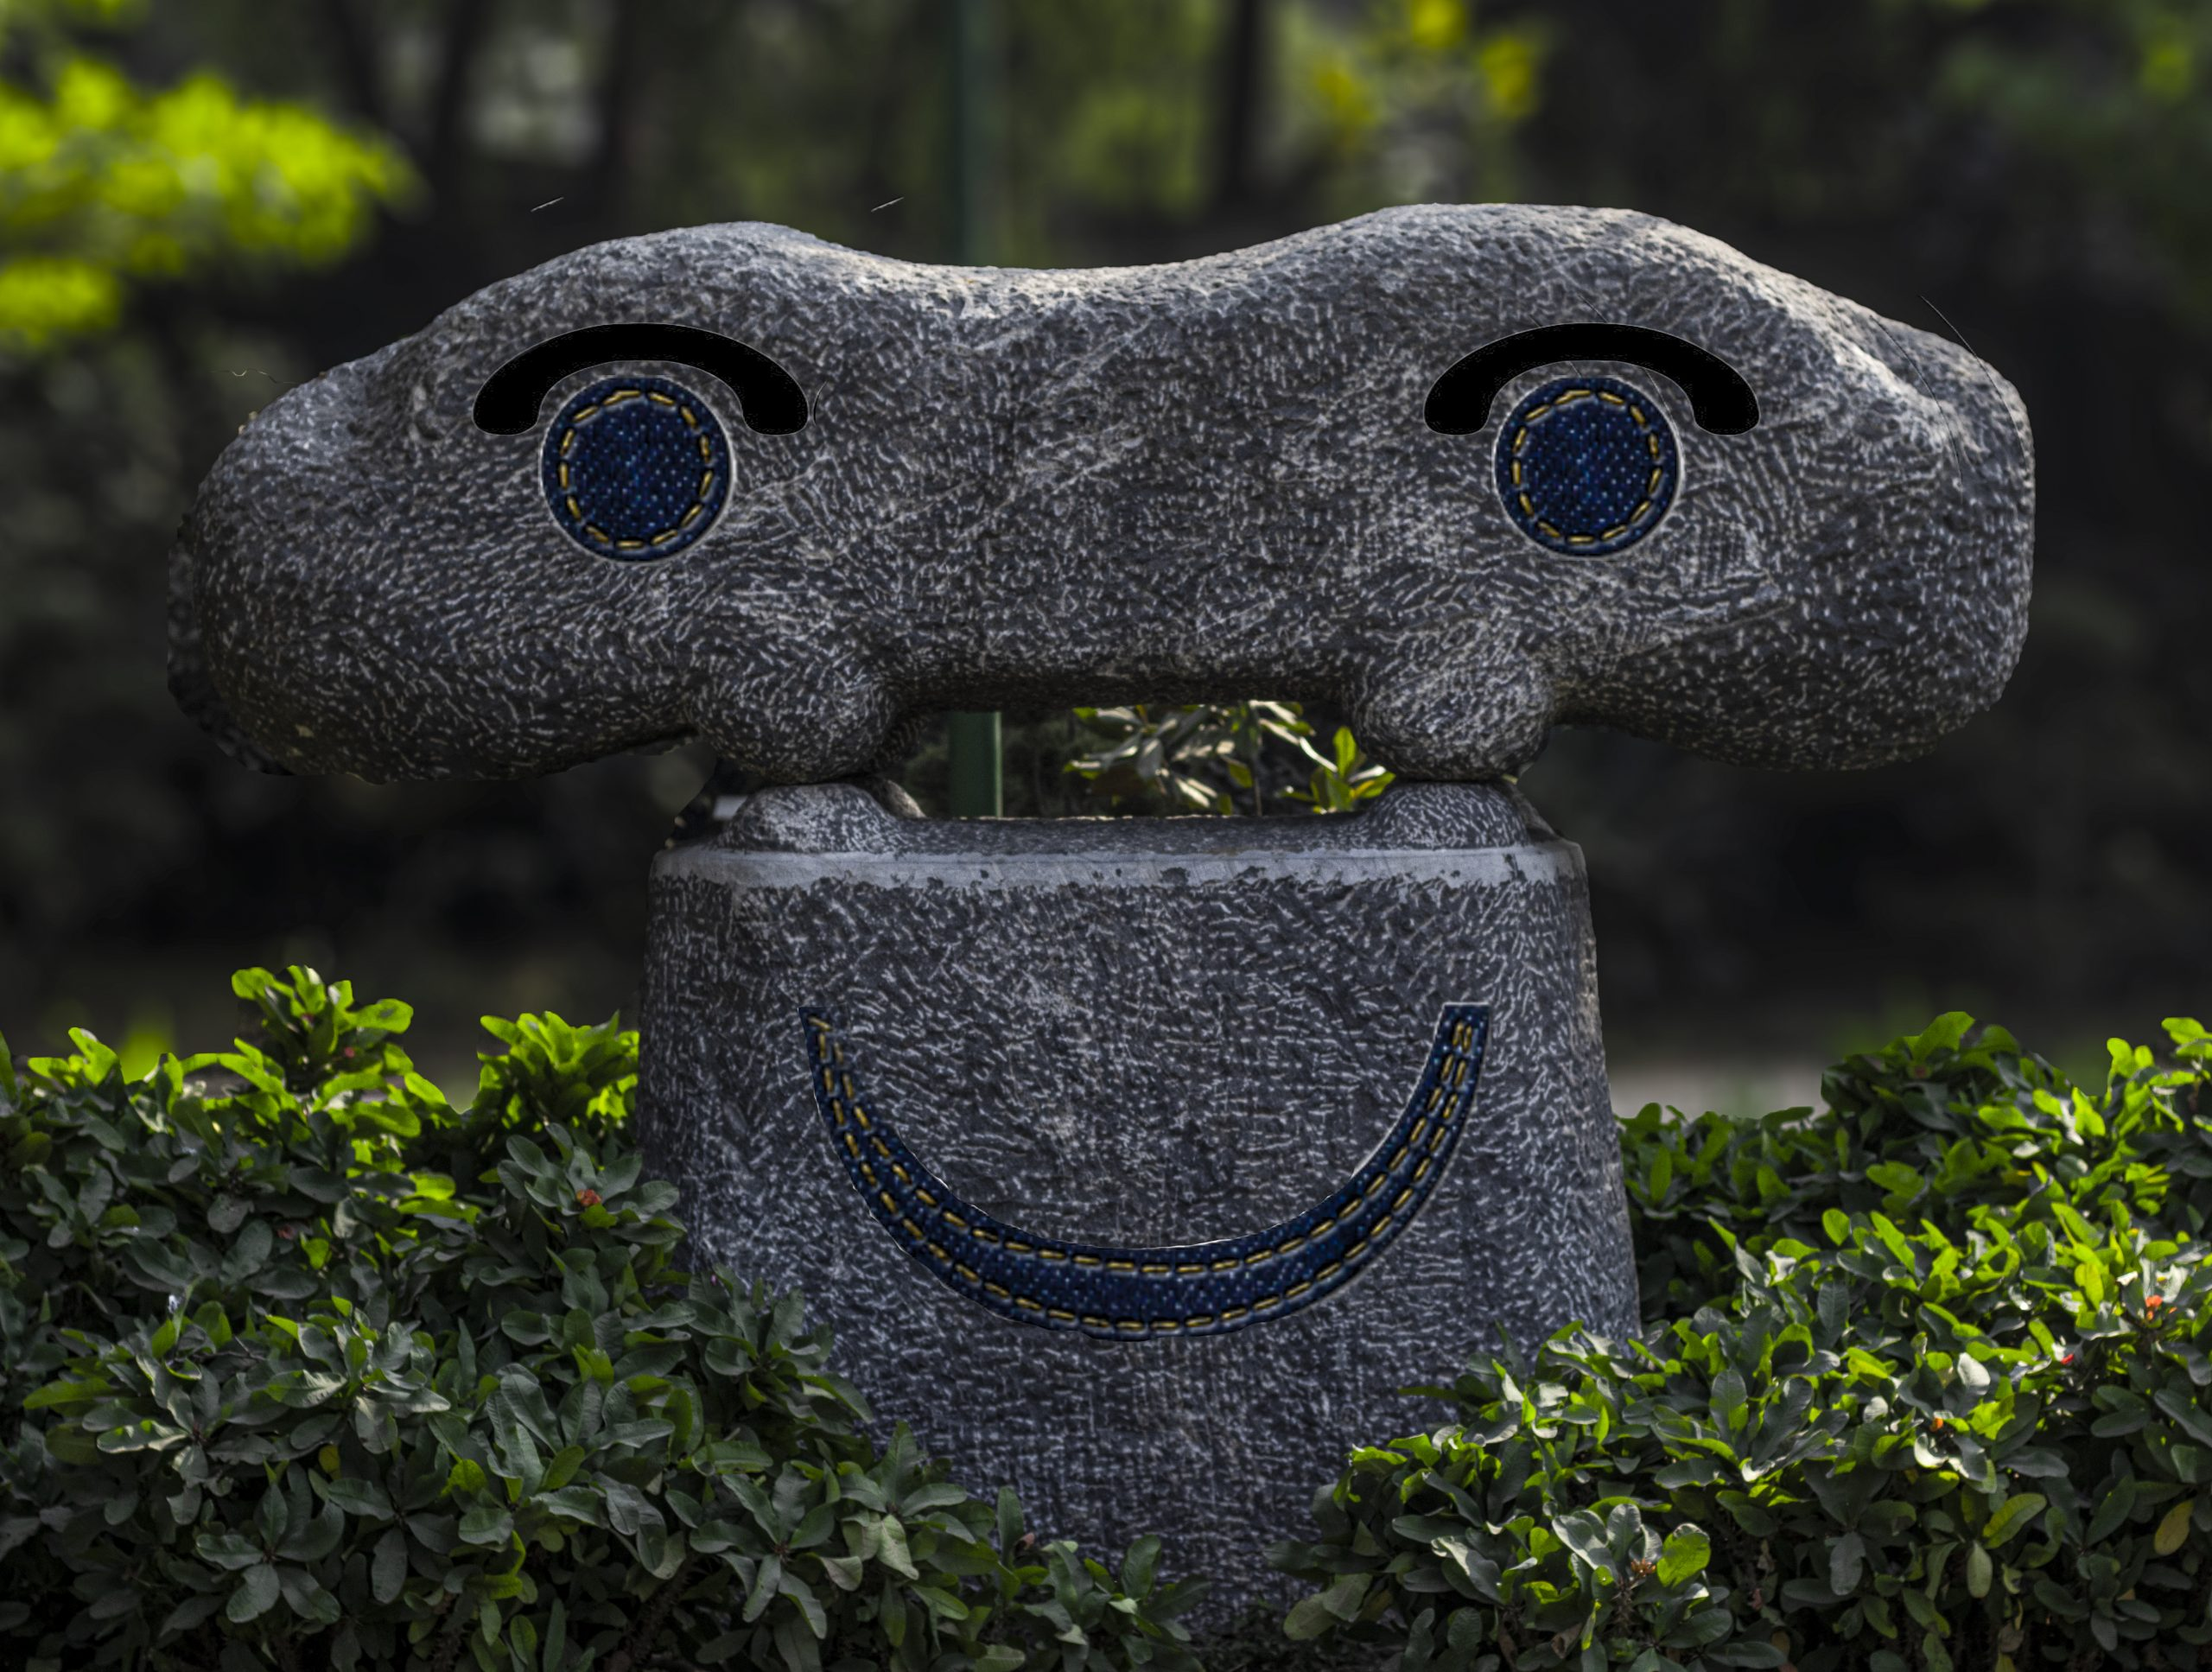 Smiley made with concrete